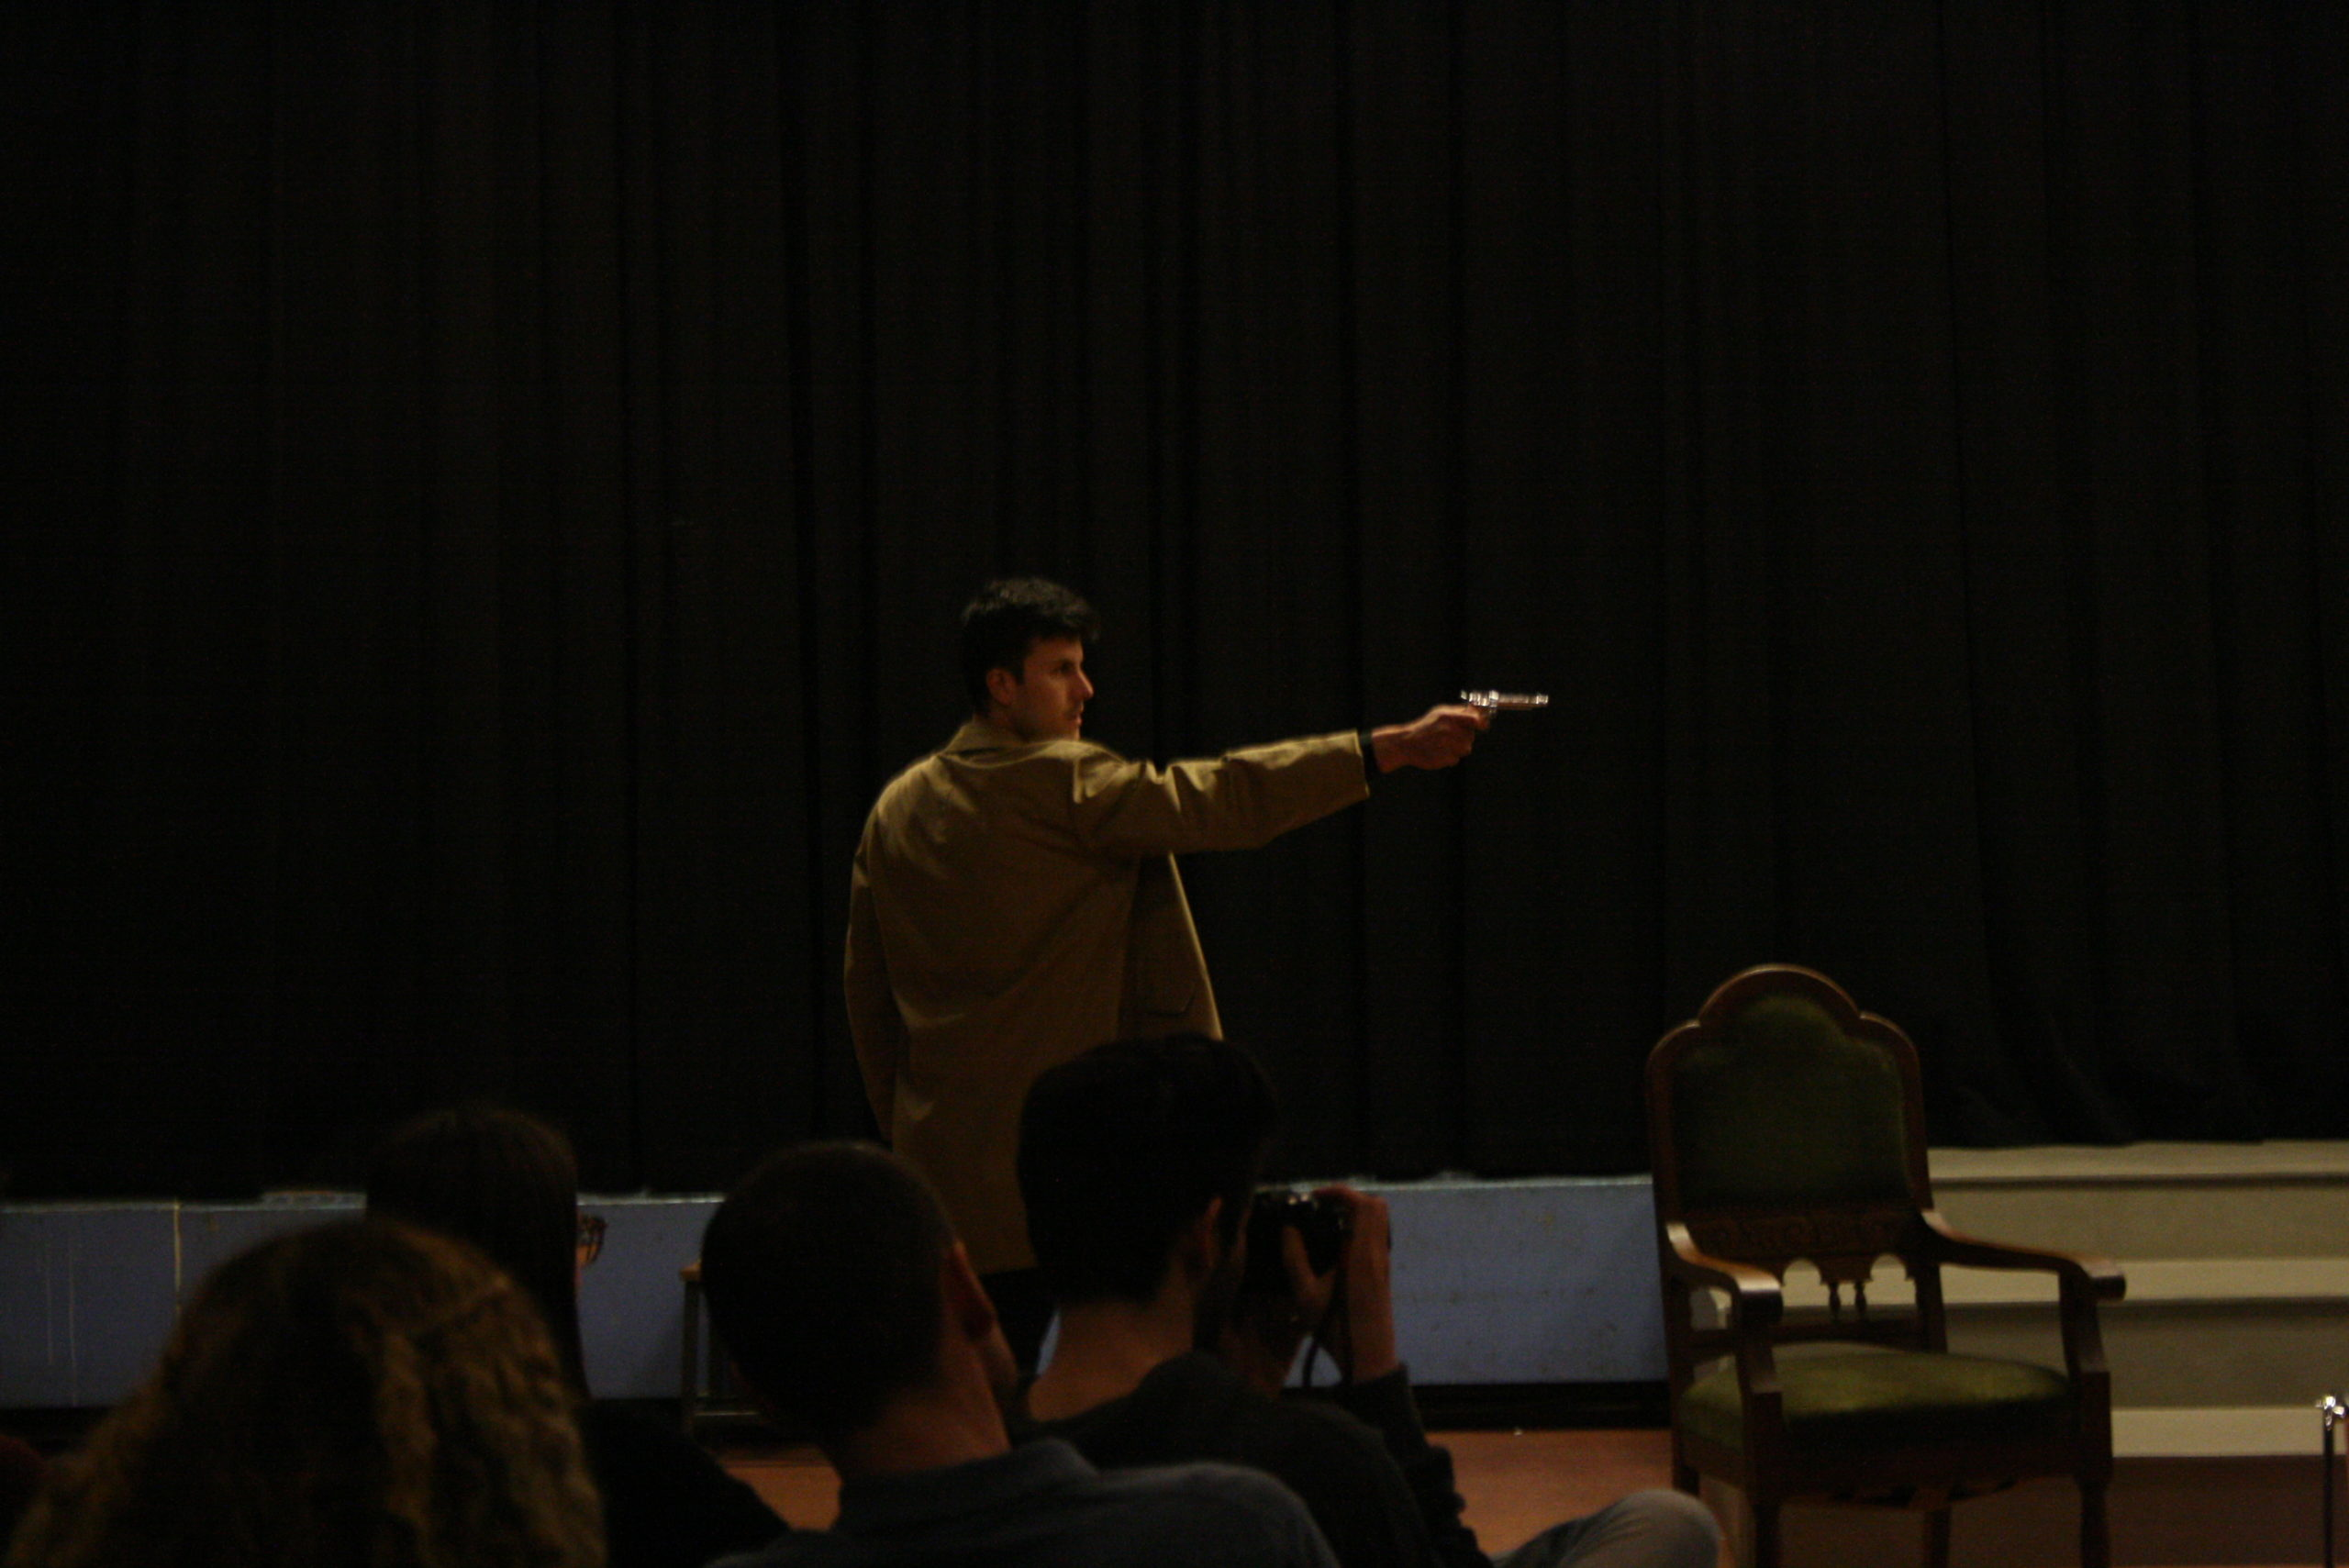 """Photo from the show """"Skin of our Teeth"""". Man with half-long beige coat is pointing the gun at someone out of the picture"""